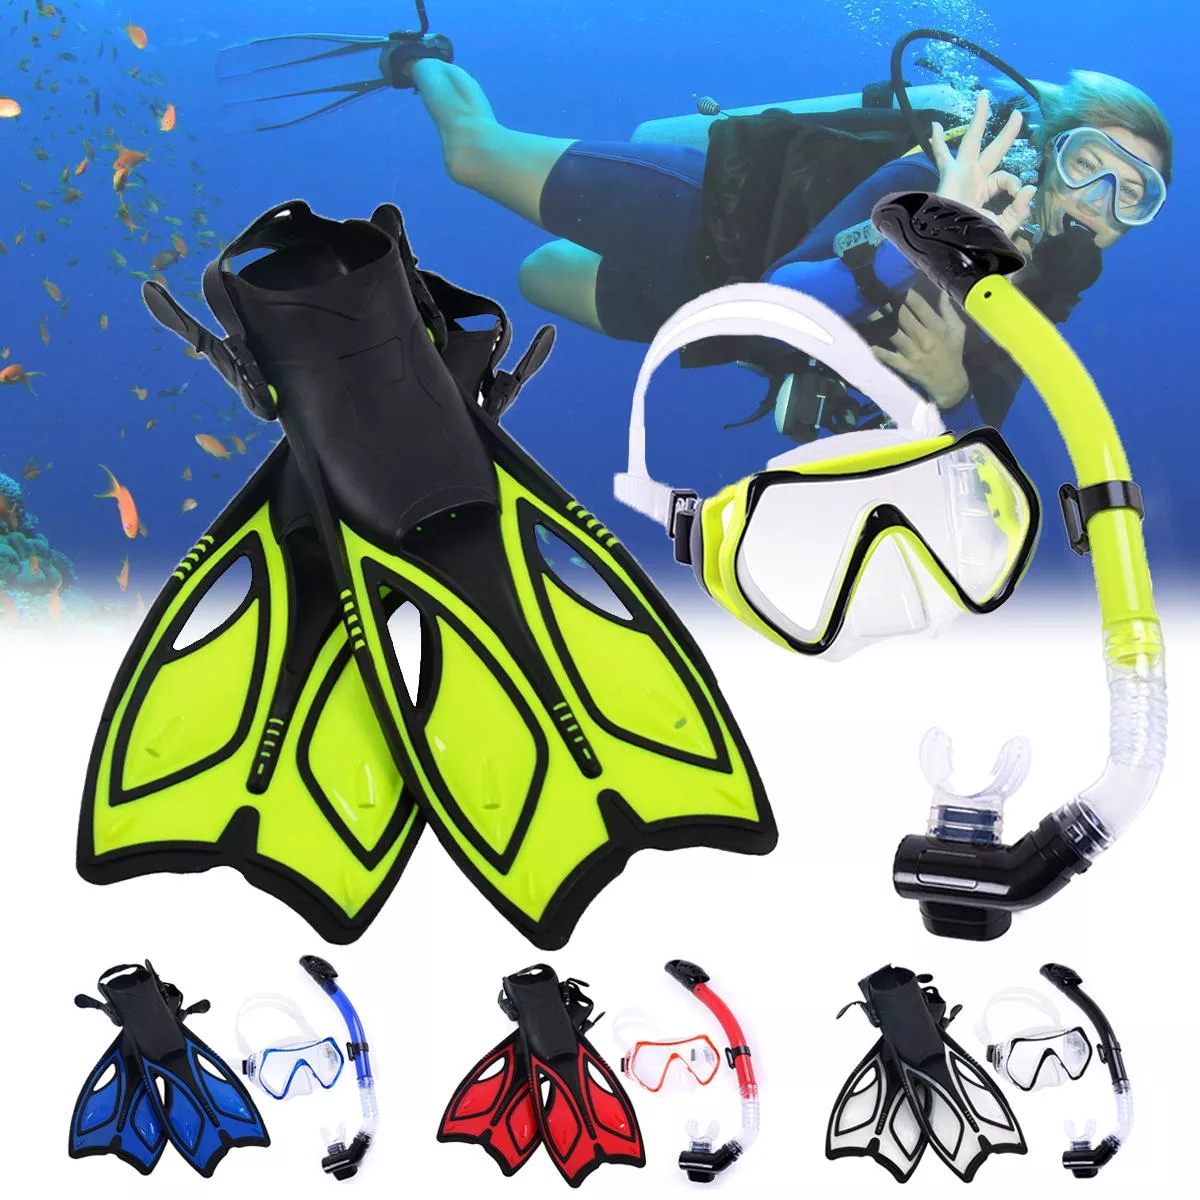 Professional Snorkeling Set Diving Mask+Swimming Fins Flippers+Free Breathing Dry Top Snorkel Set For Adult Youth Foot Fins D25